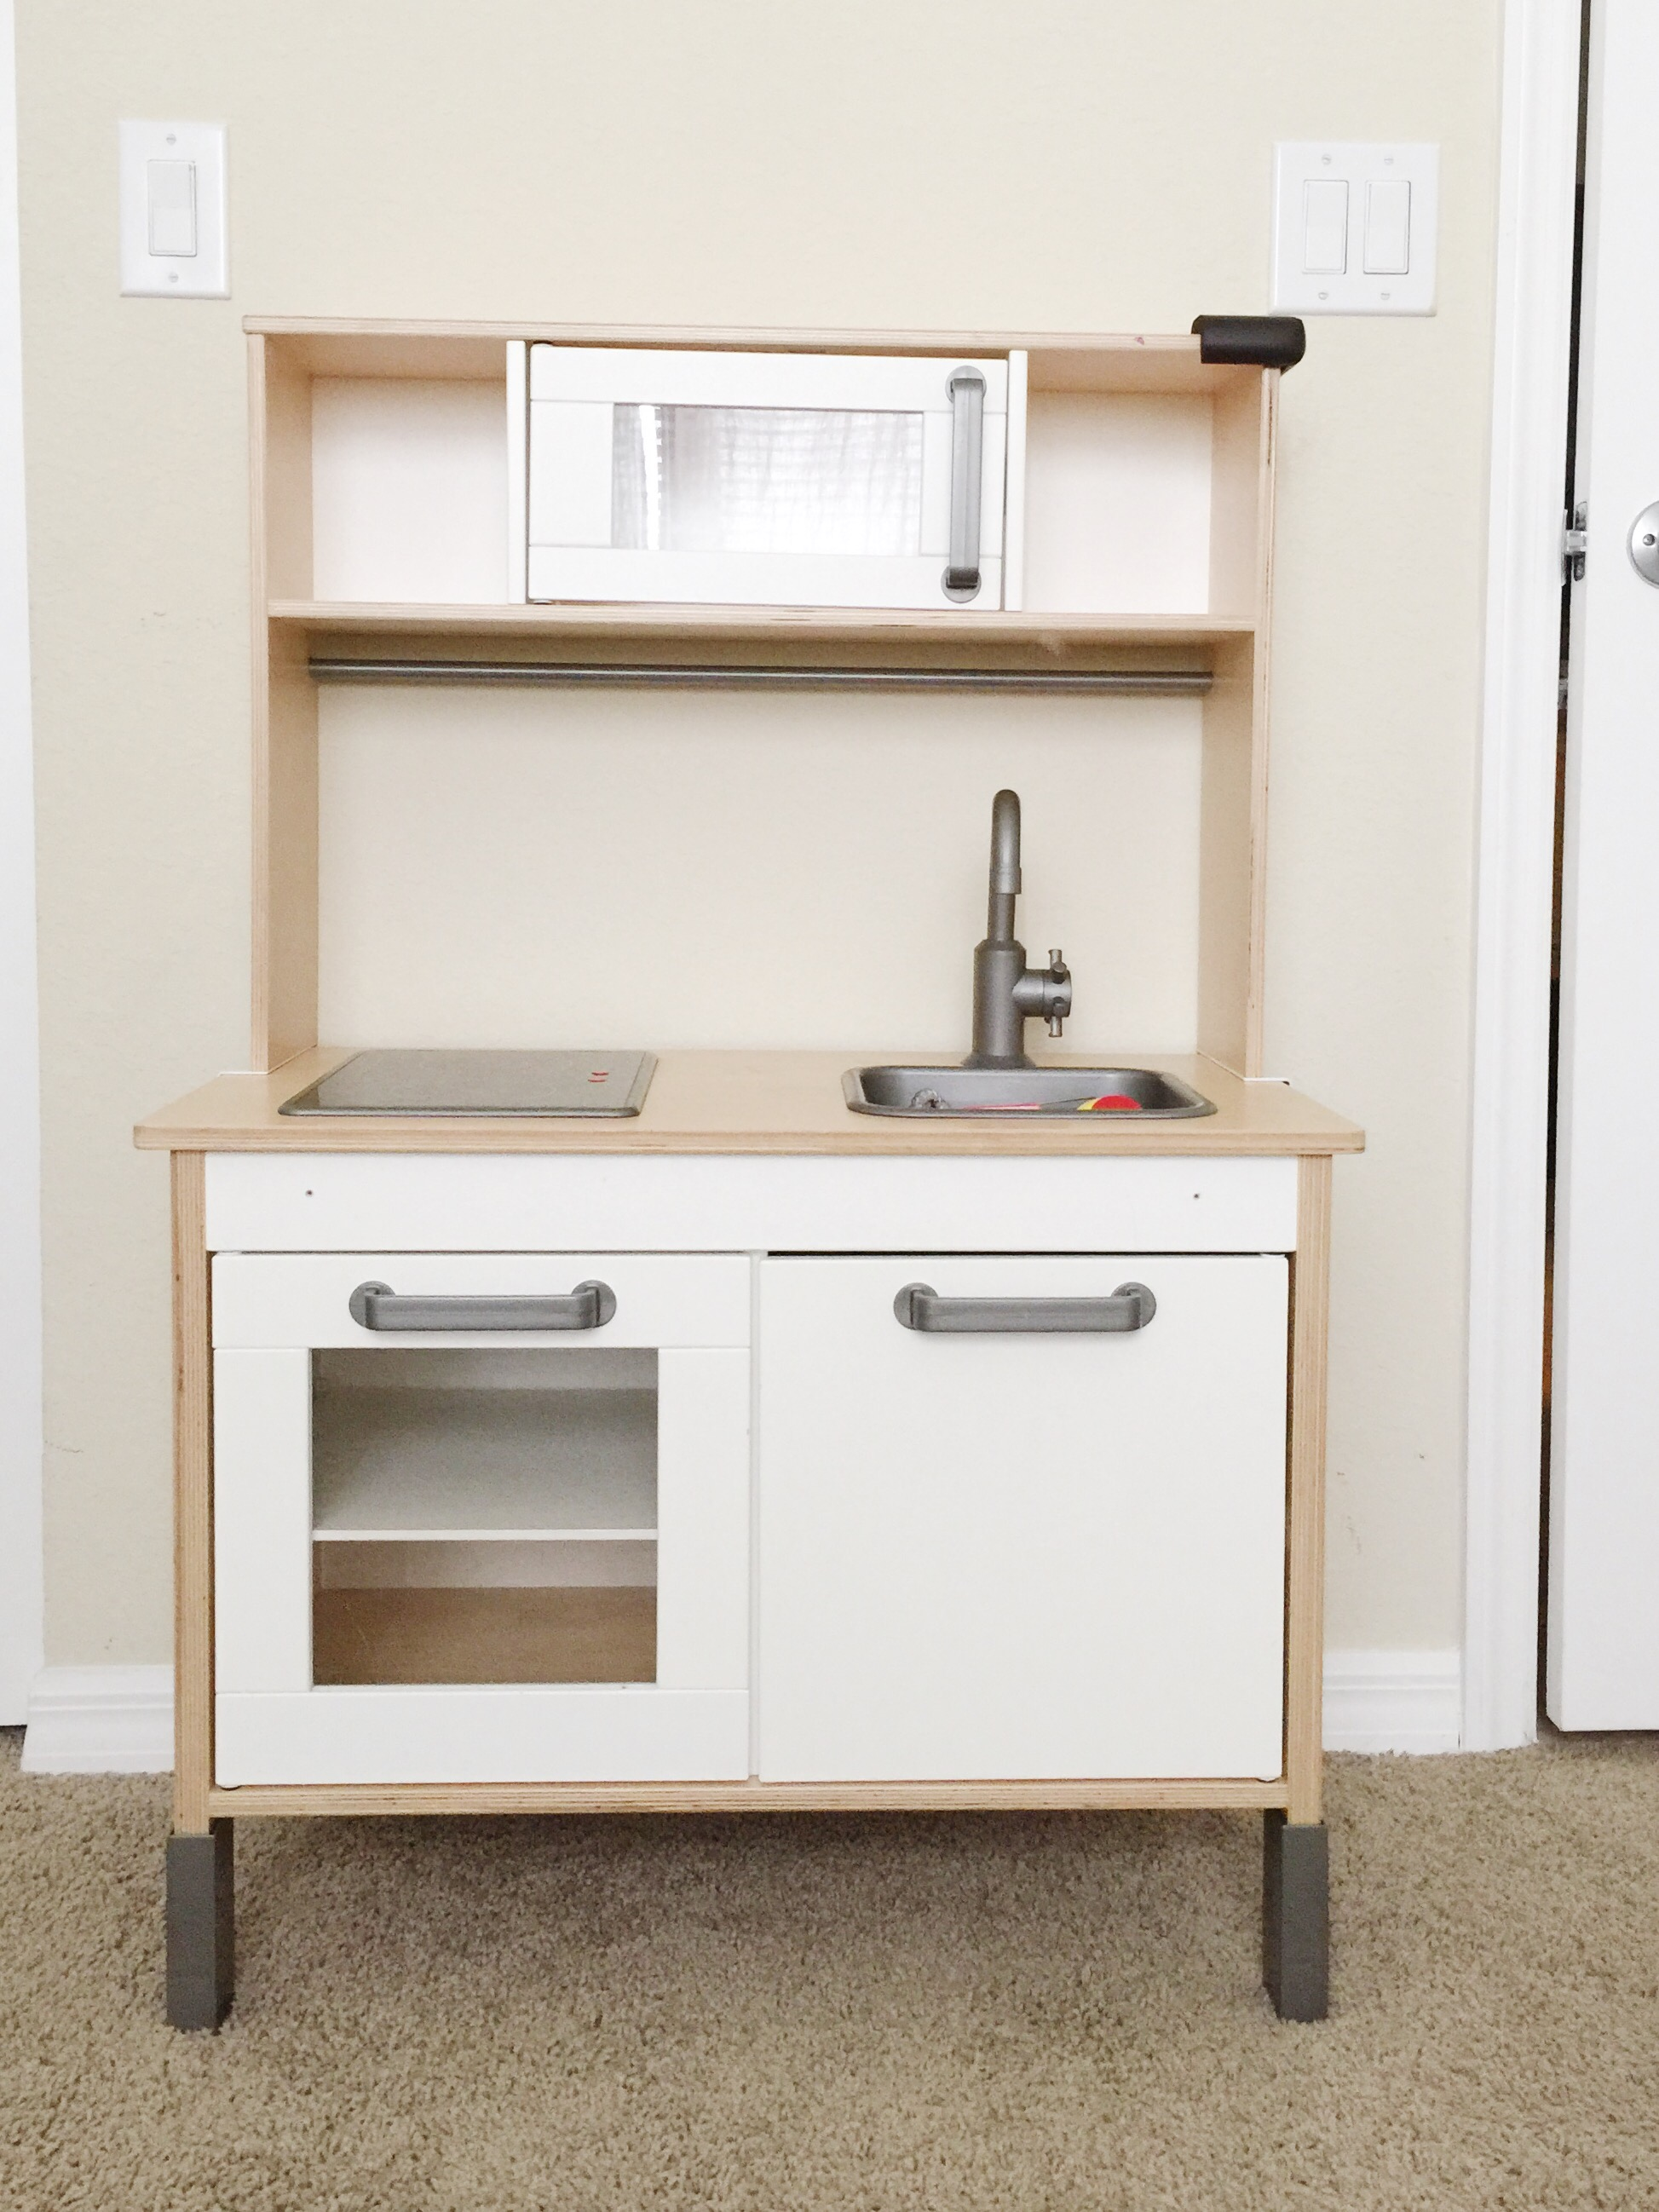 IKEA MINI KITCHEN MAKEOVER  Ale  Tere  A lifestyle blog